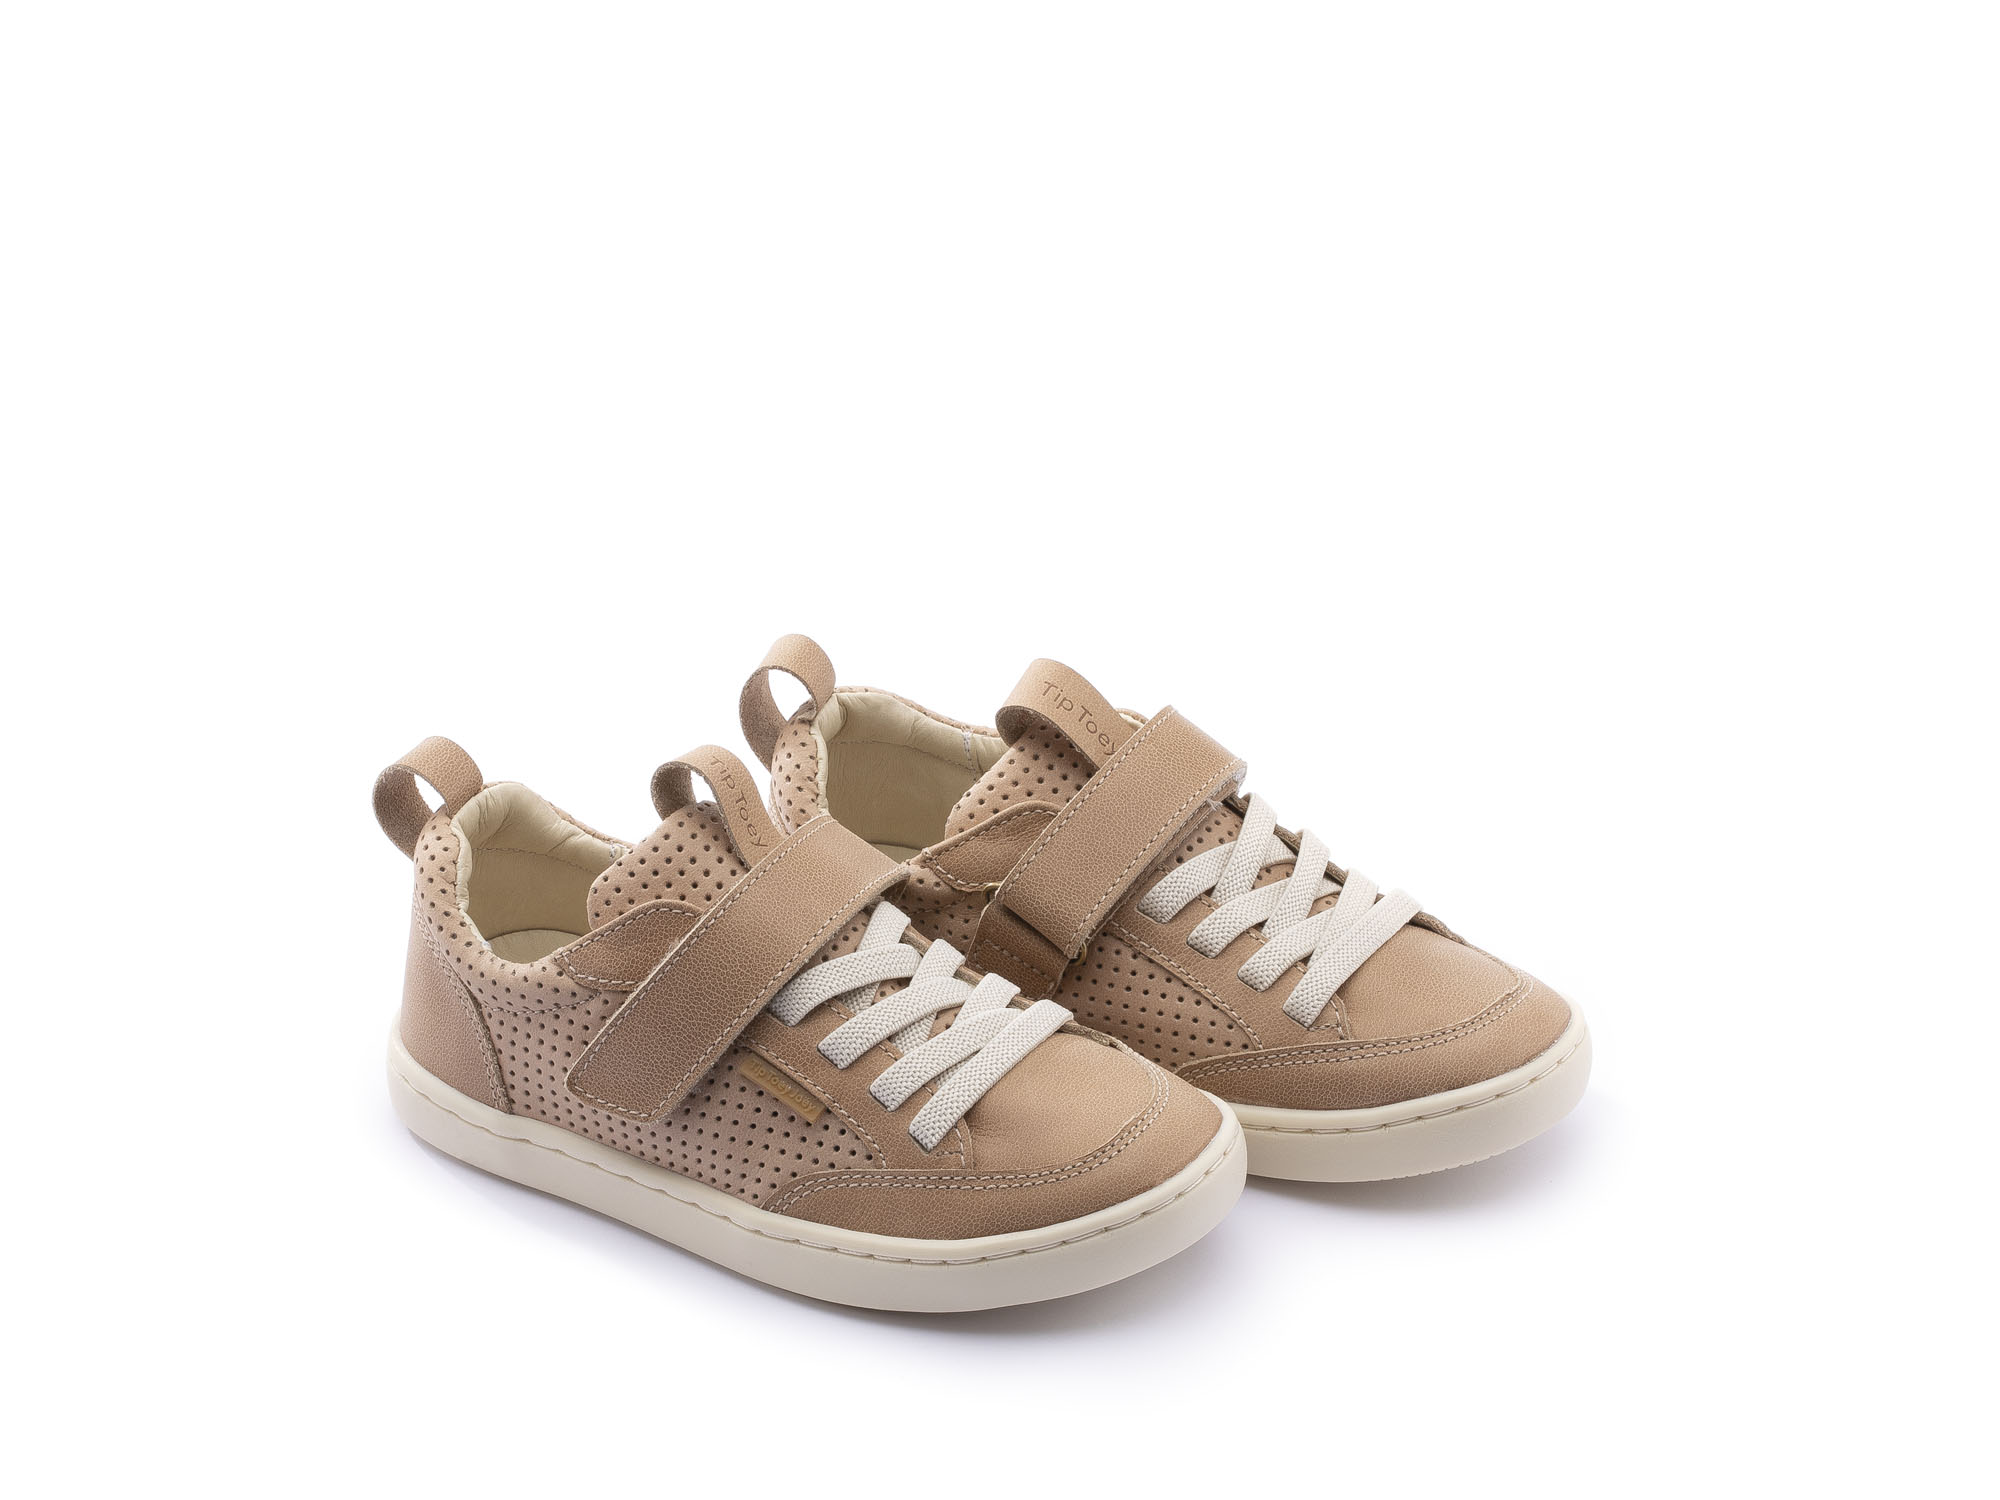 Sneaker Casual Little Urban Sand/ Sand Holes Toddler 2 à 4 anos - 0